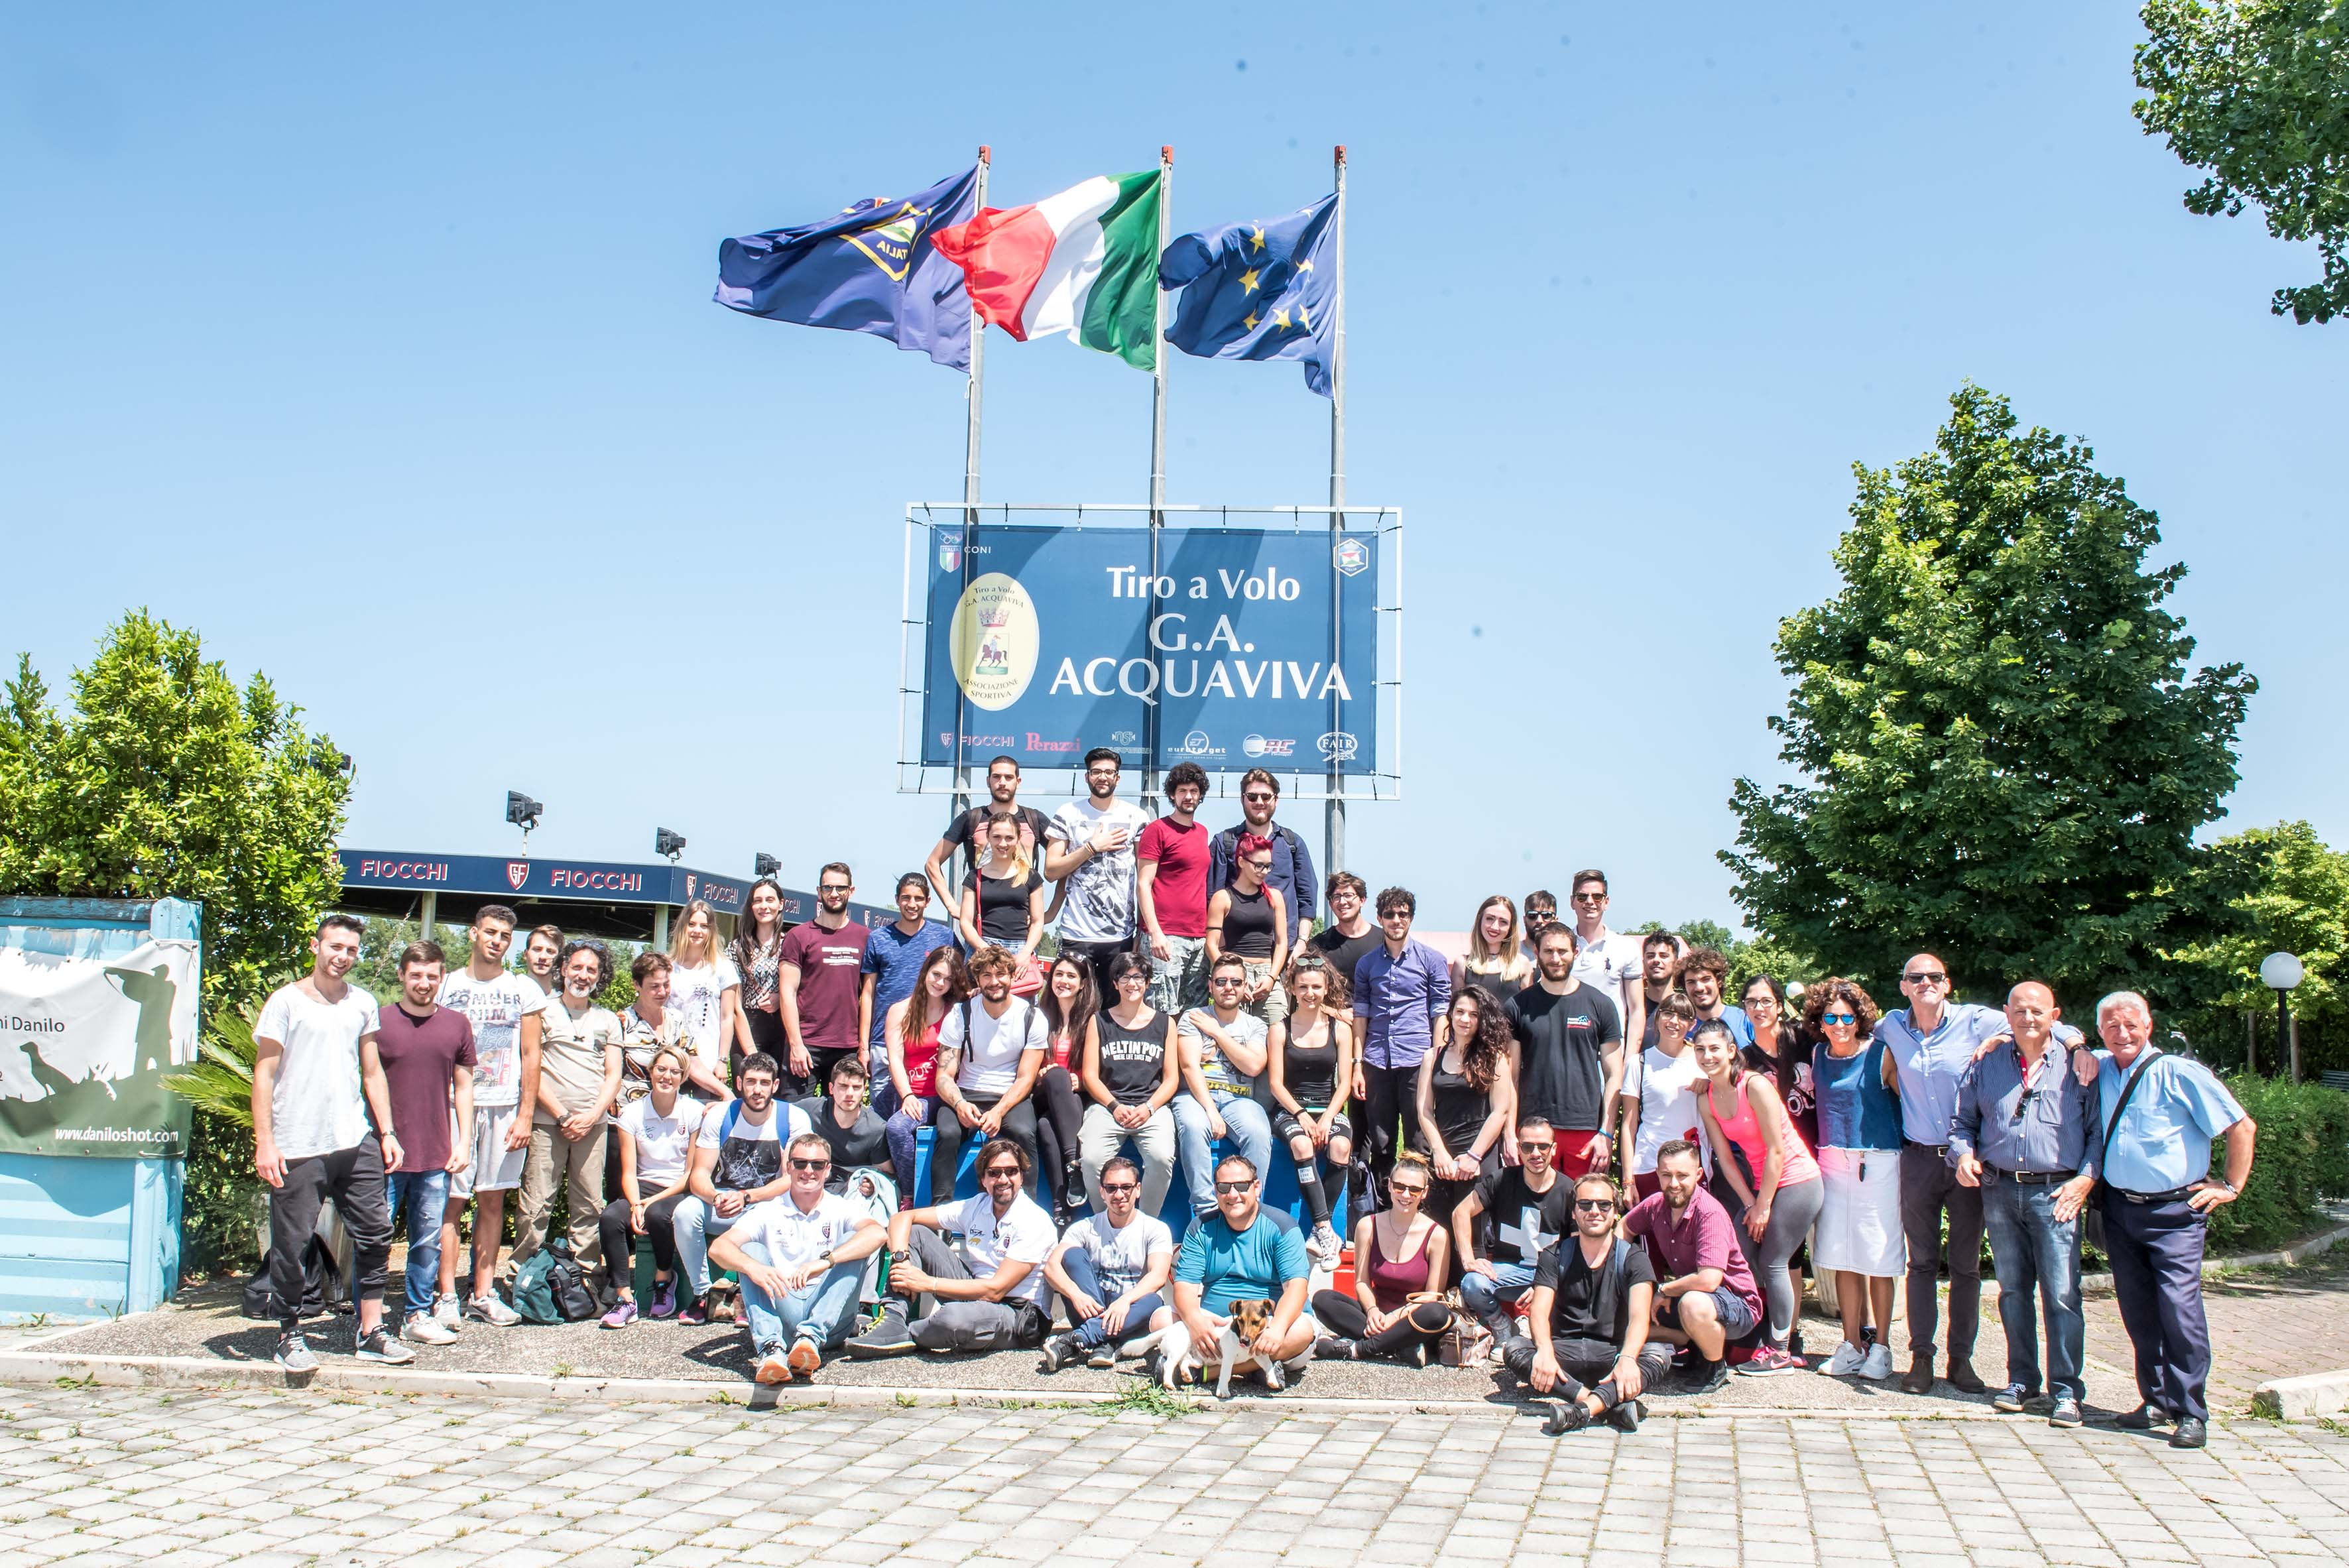 THE UNIVERSITY STUDENTS OF L'AQUILA CRUSHED CLAYS WITH FIOCCHI